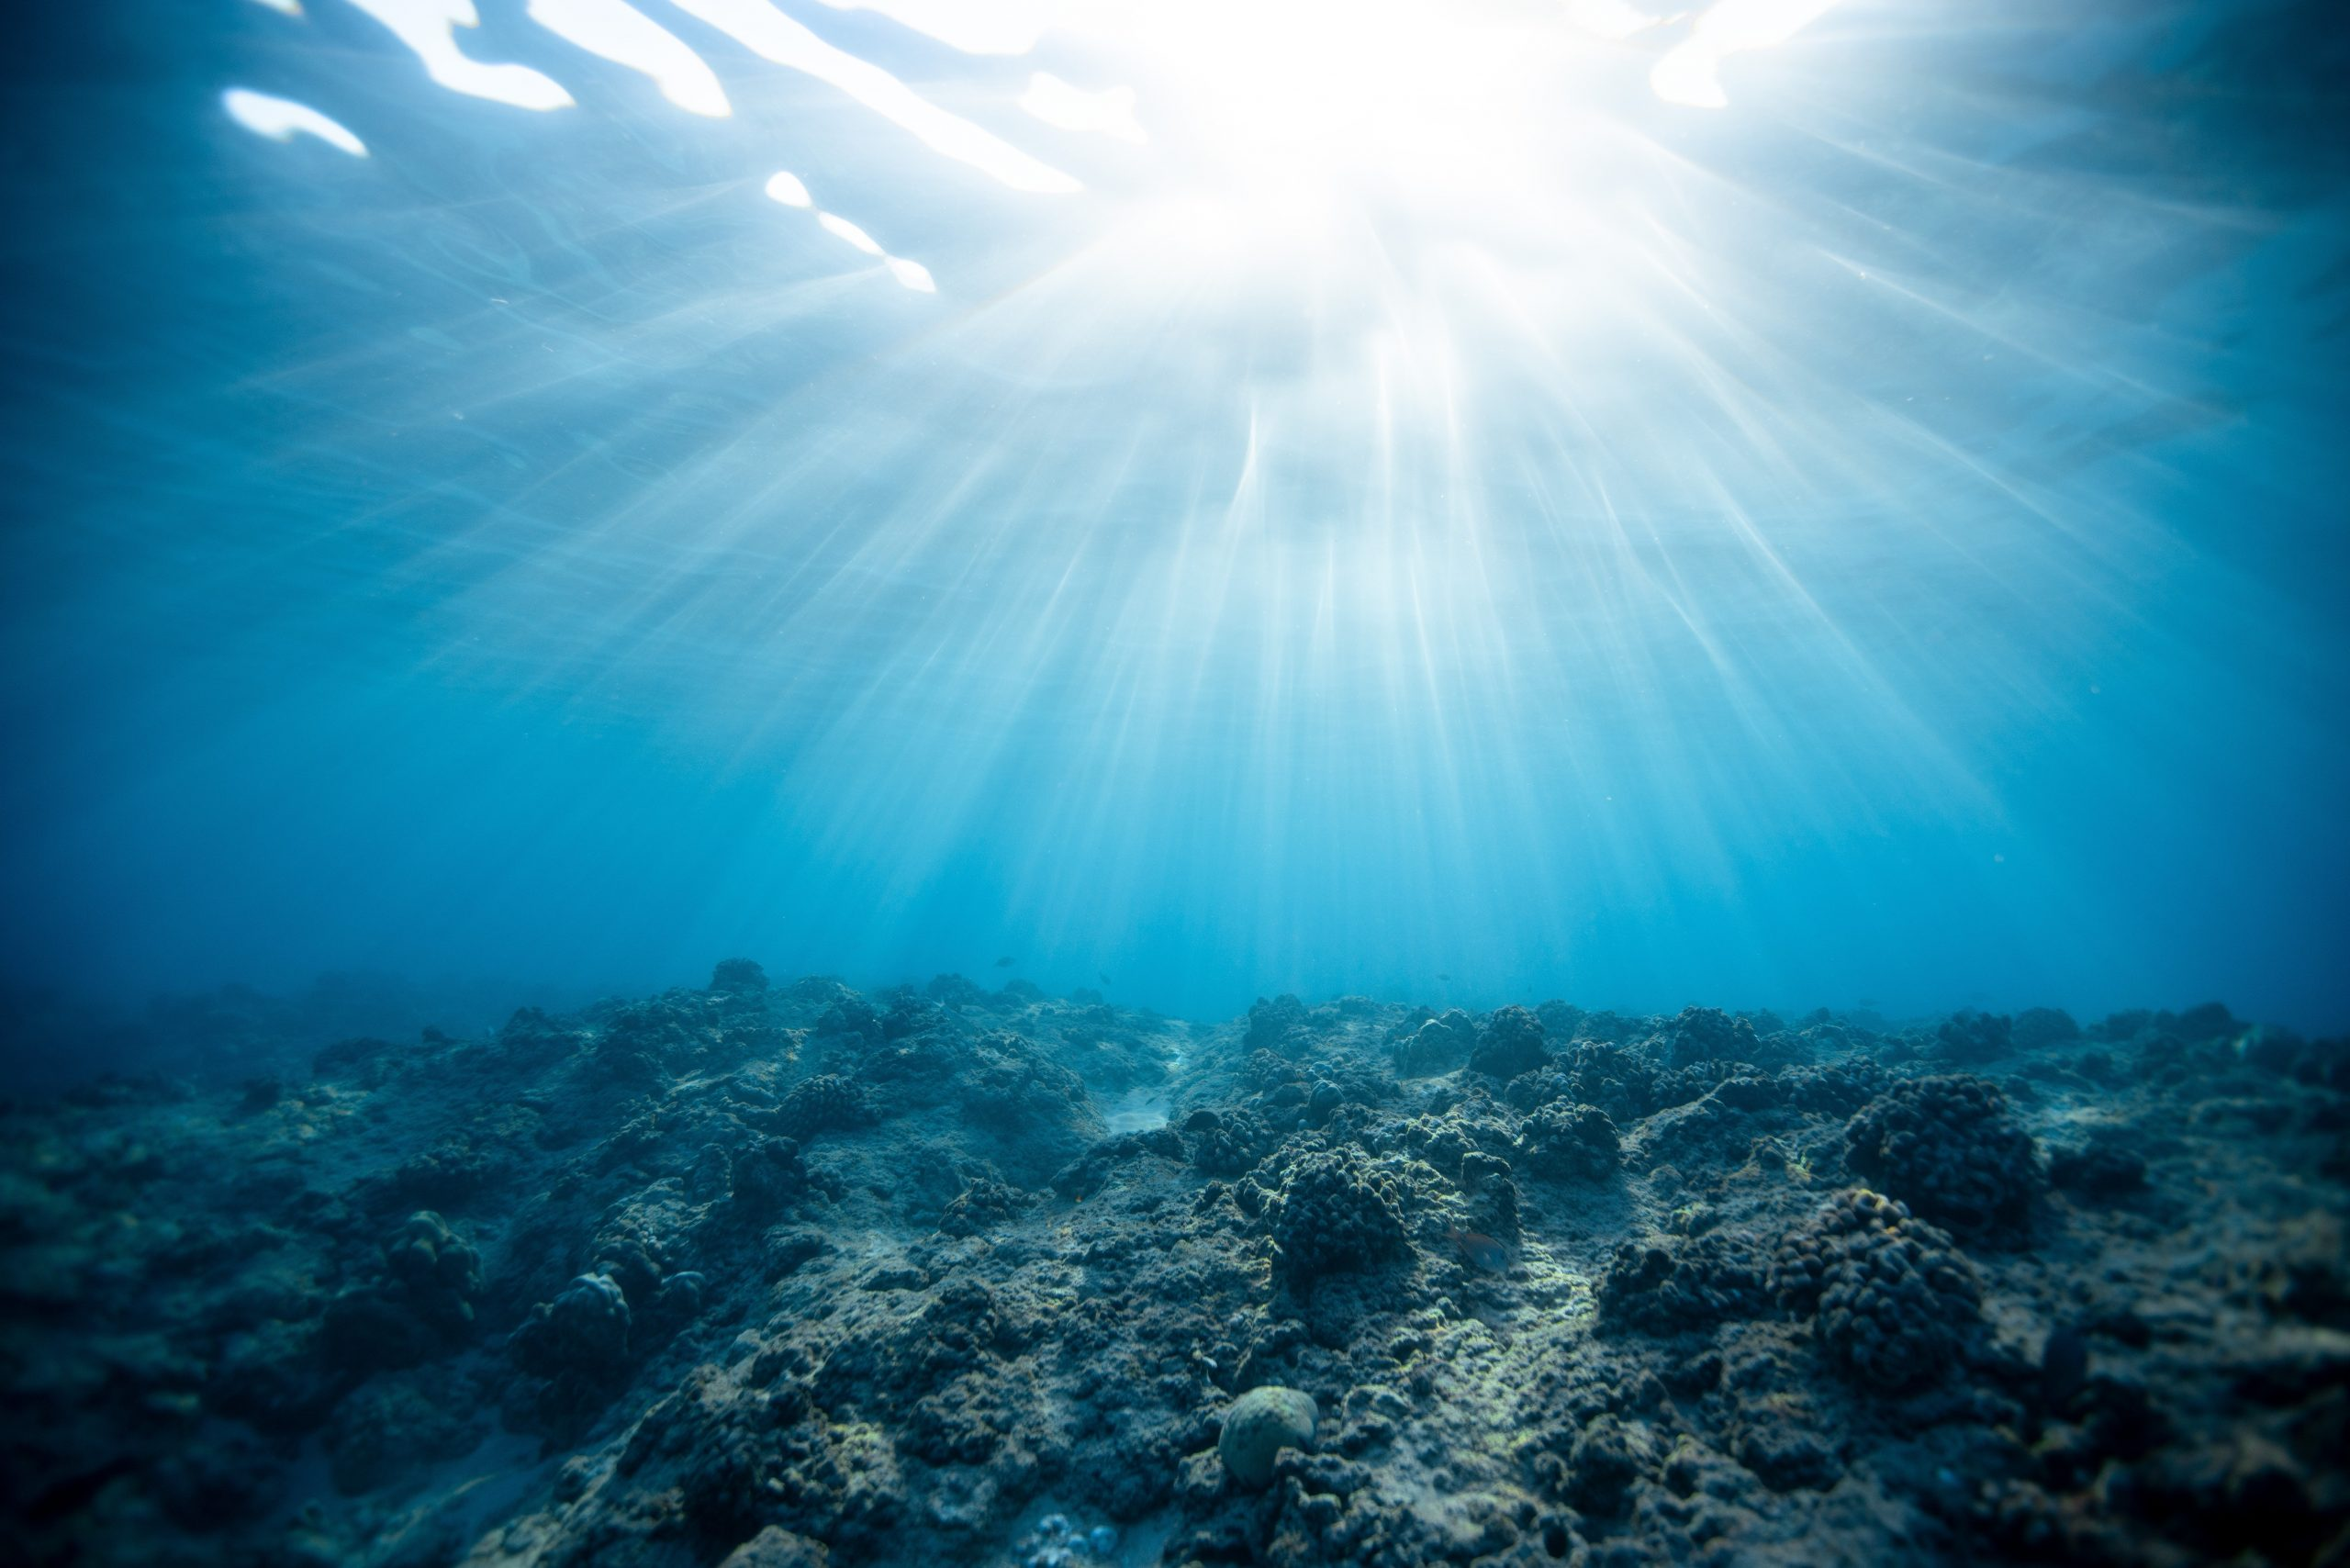 Applications Invited for New Sustainable Management of UK Marine Resources (SMMR) Research Programme